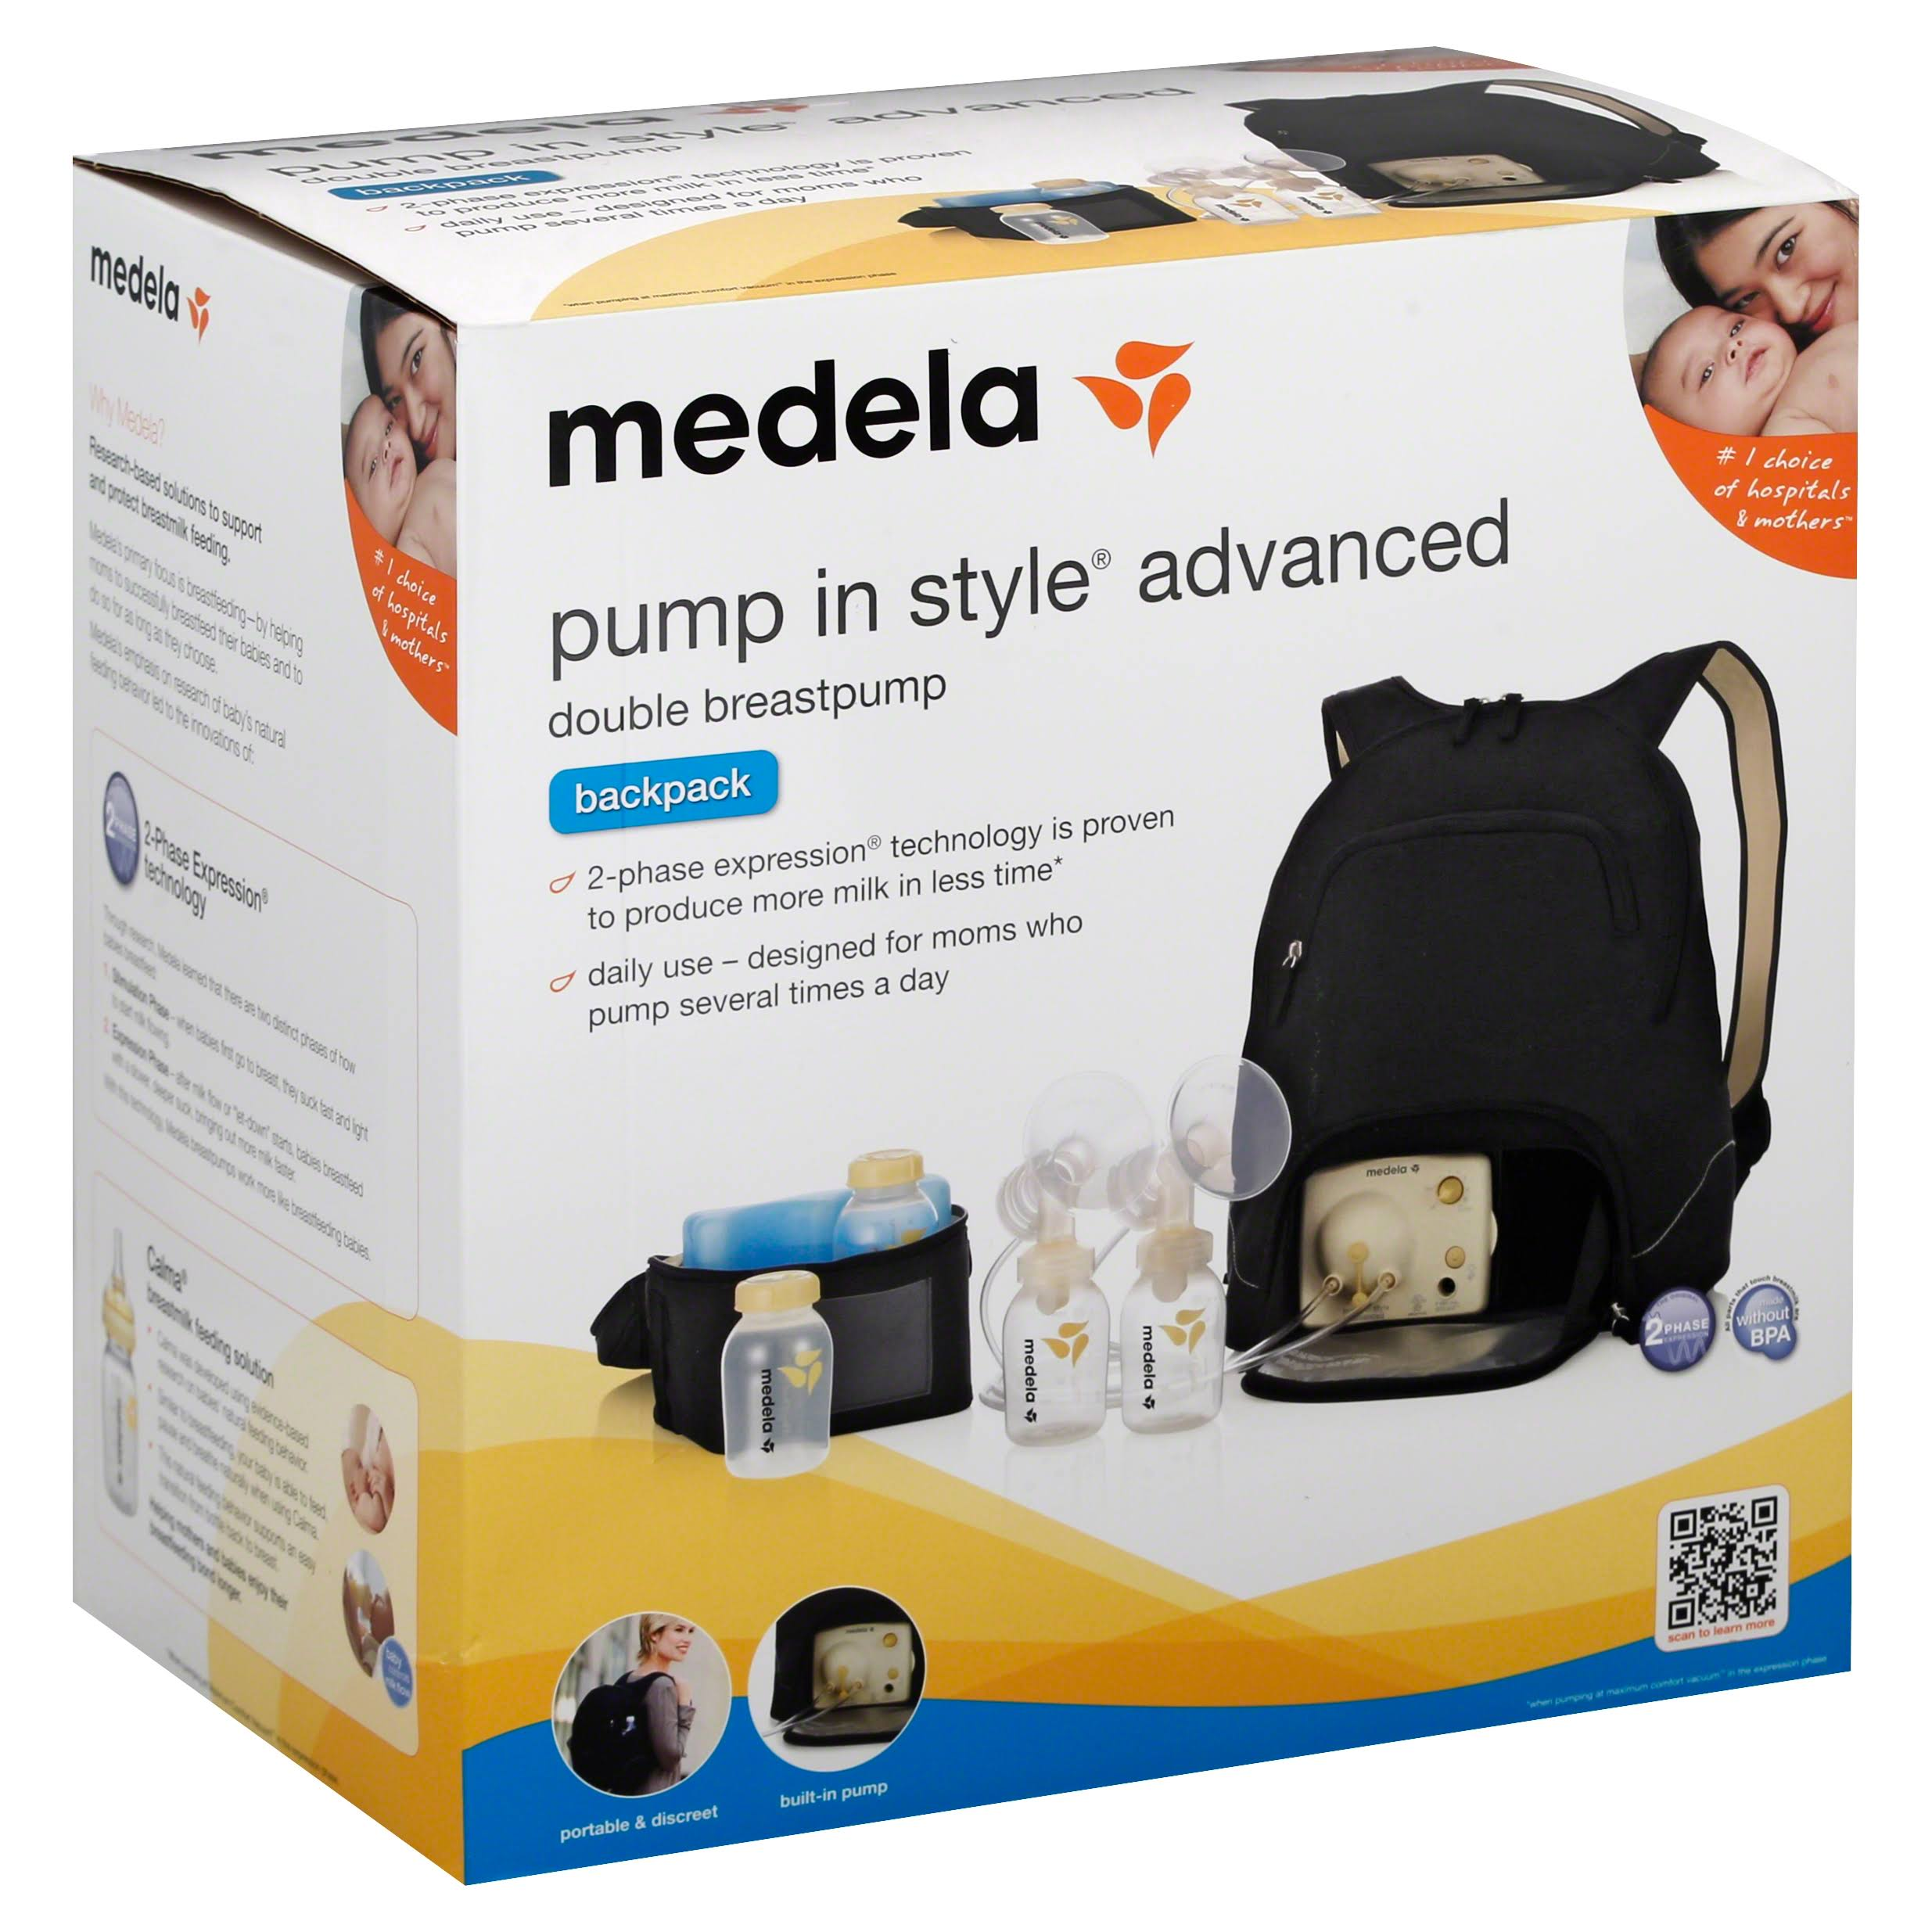 Medela In Style Advanced Double Breast Pump - with Backpack